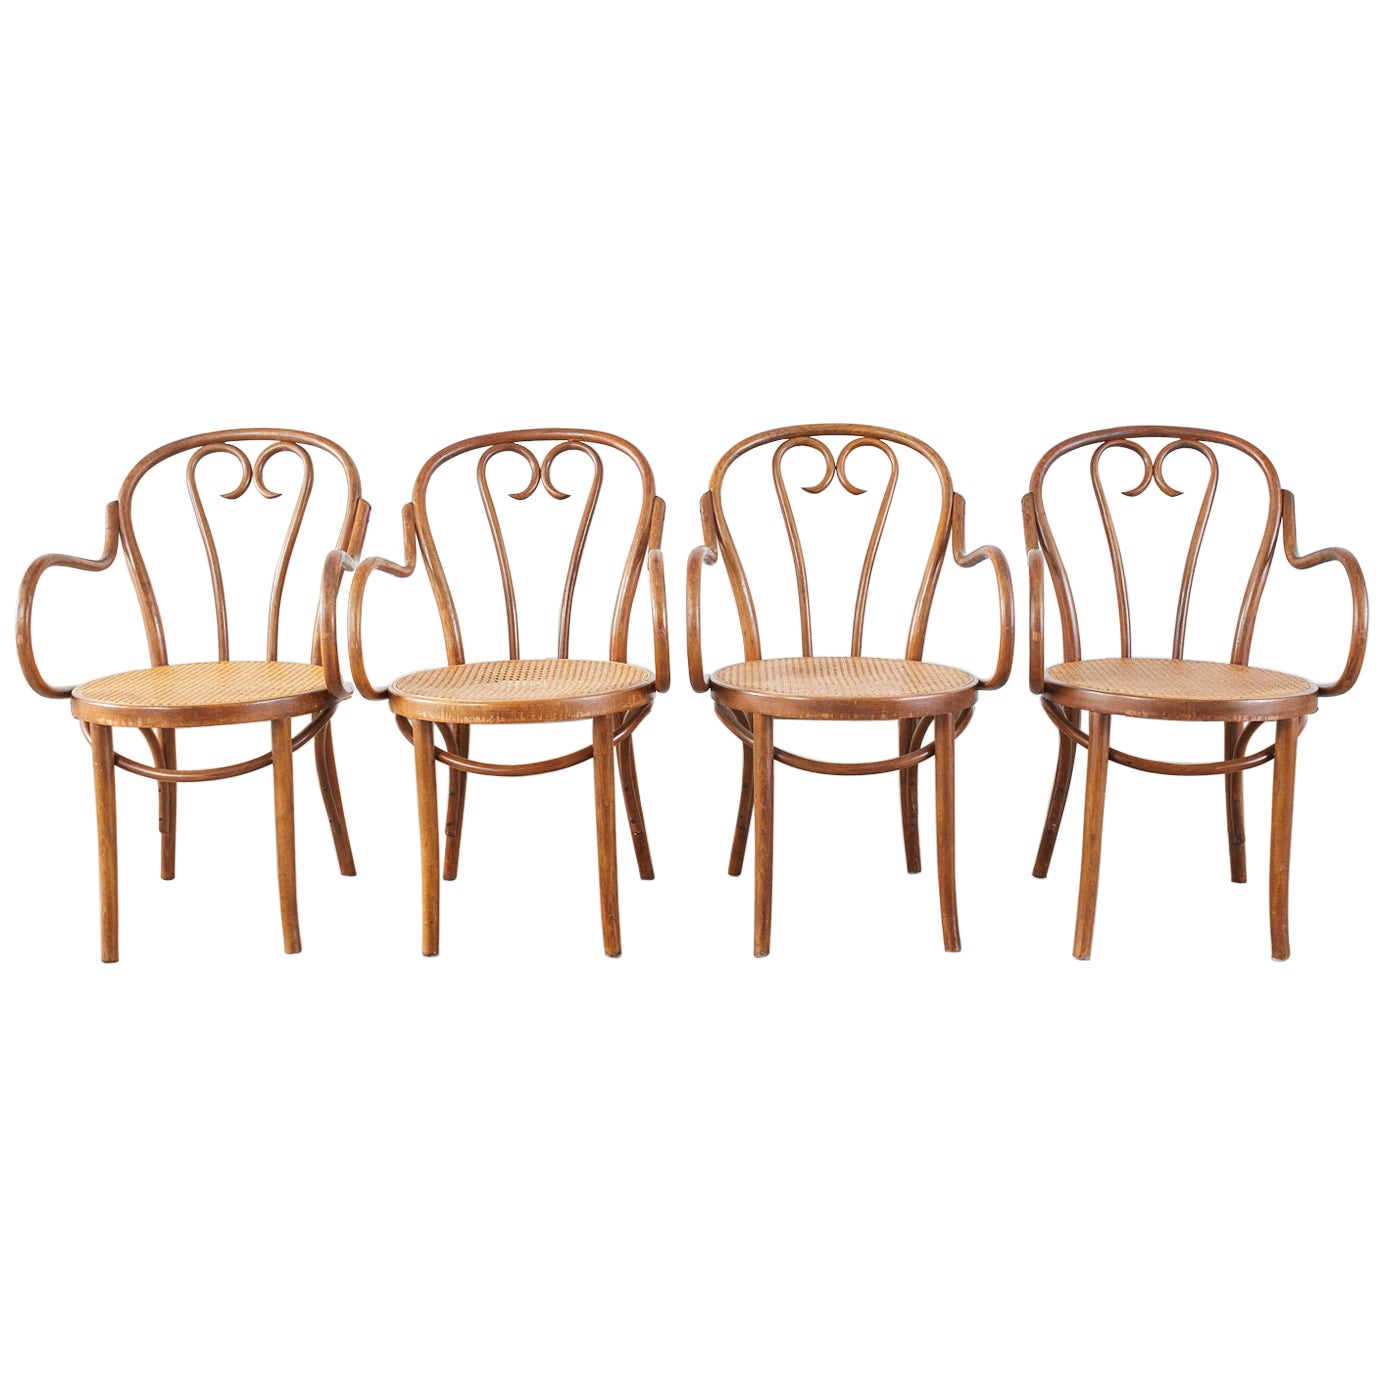 Set of Four Thonet Style Bentwood and Cane Armchairs